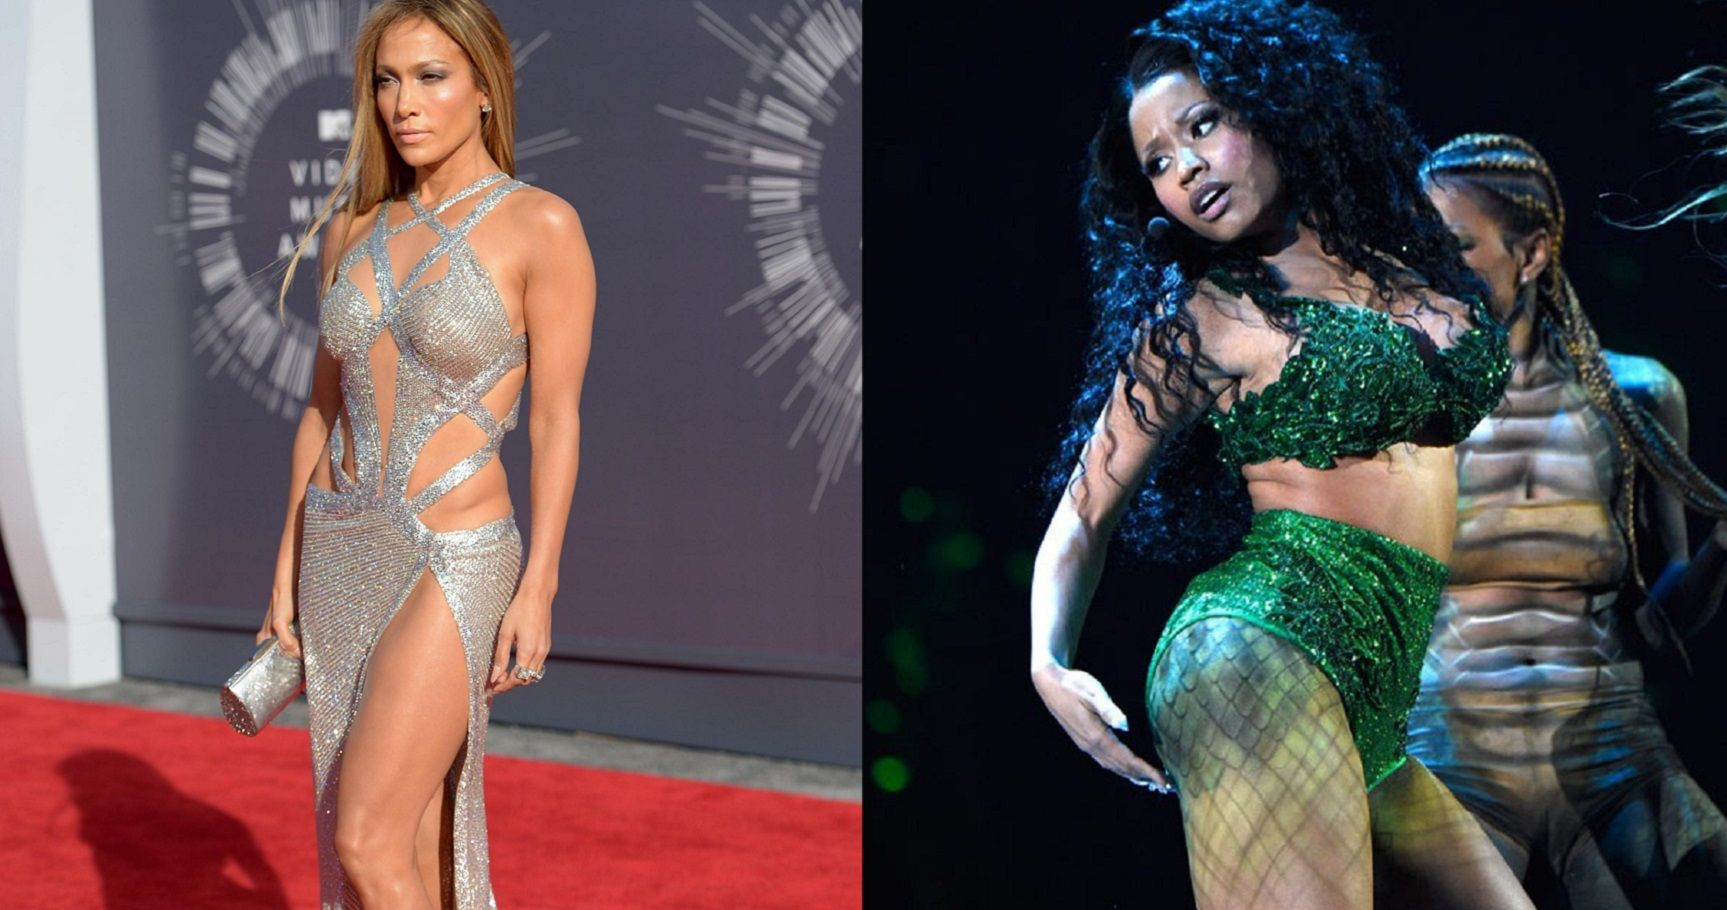 The 15 Hottest MTV VMA Looks Of All Time